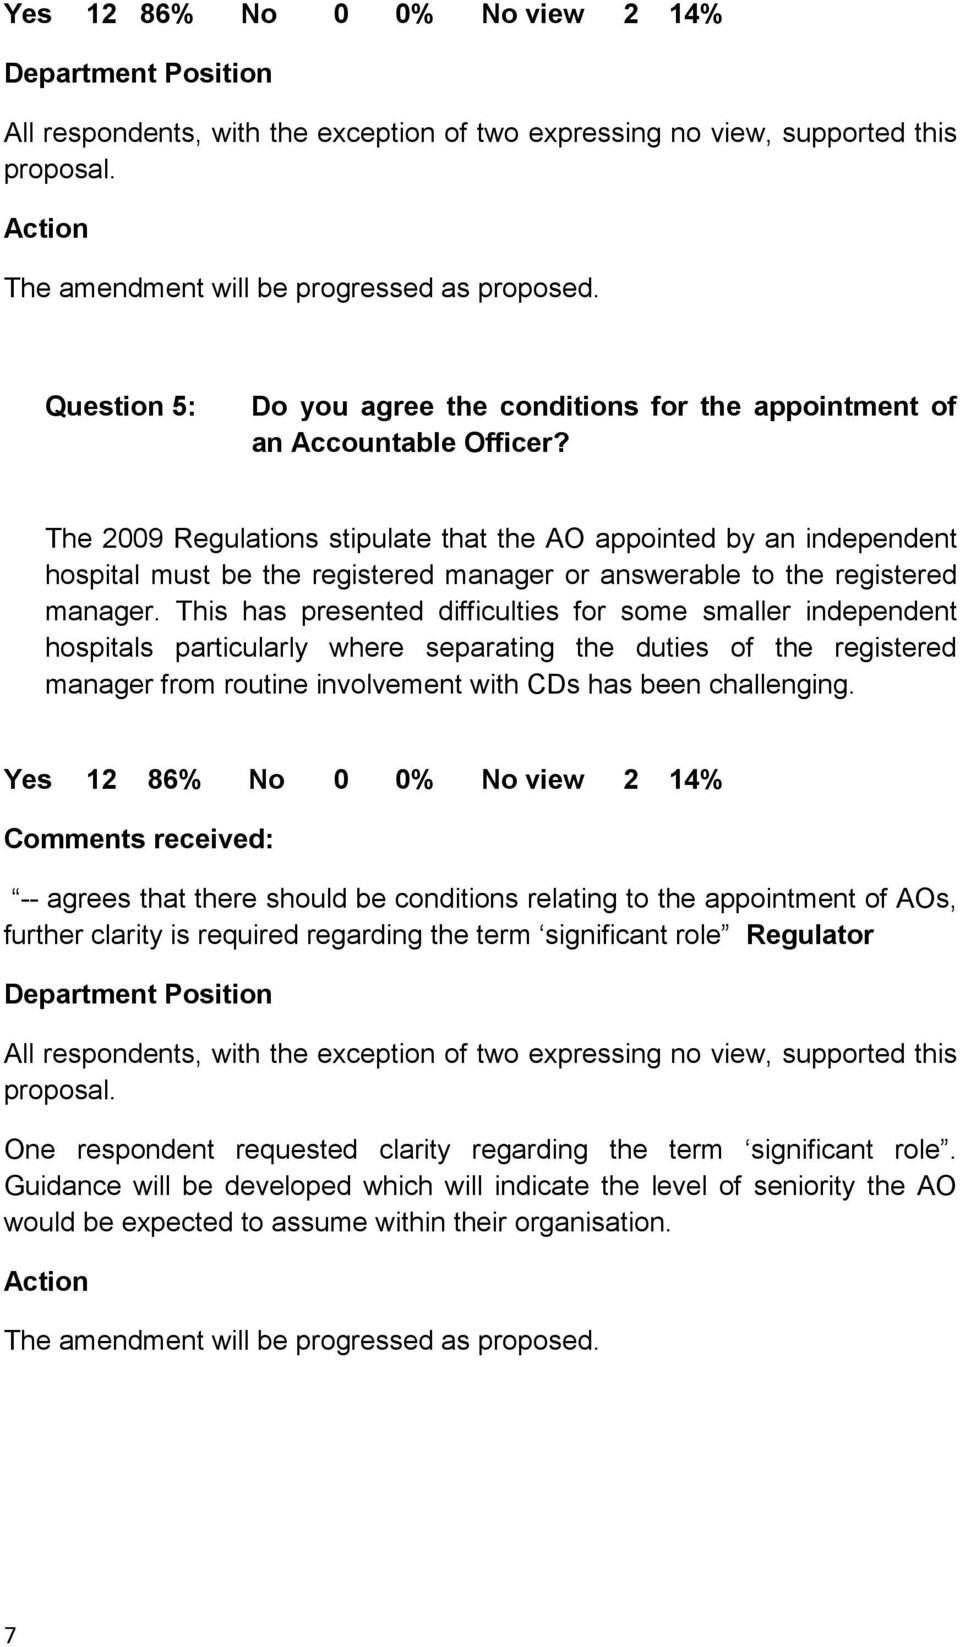 The 2009 Regulations stipulate that the AO appointed by an independent hospital must be the registered manager or answerable to the registered manager.